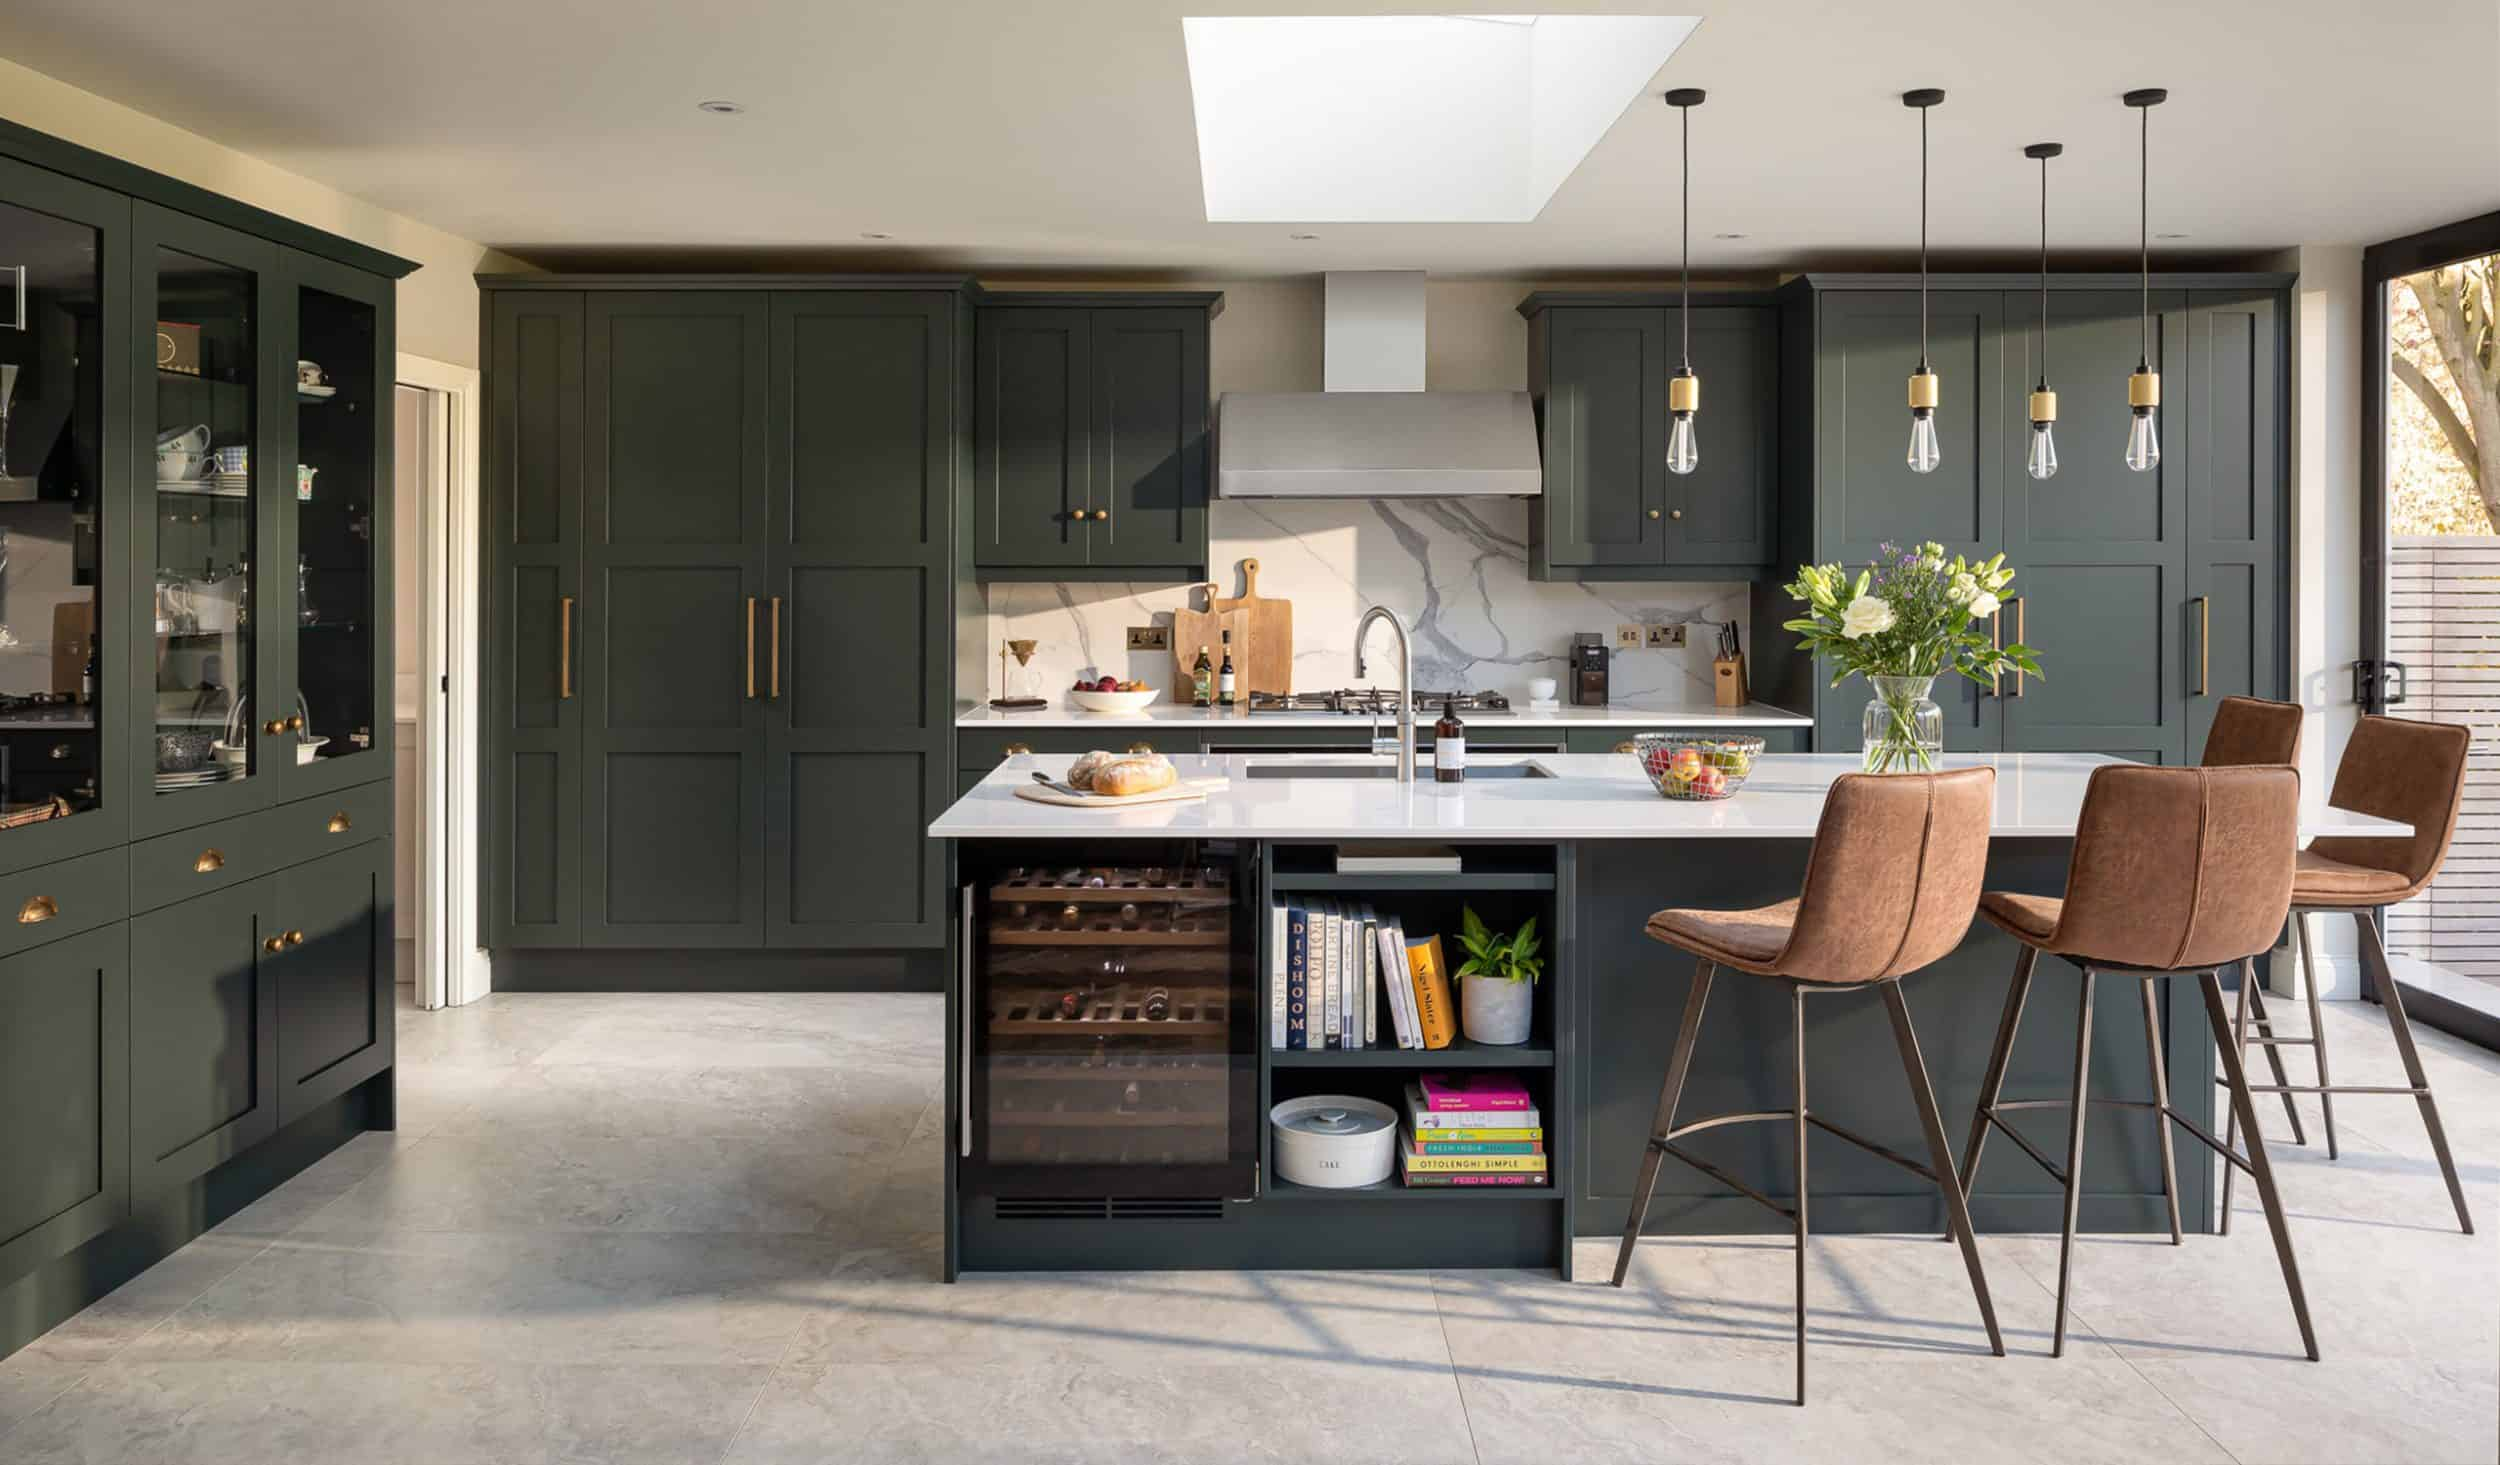 John Lewis of Hungerford Interior and kitchen view 2